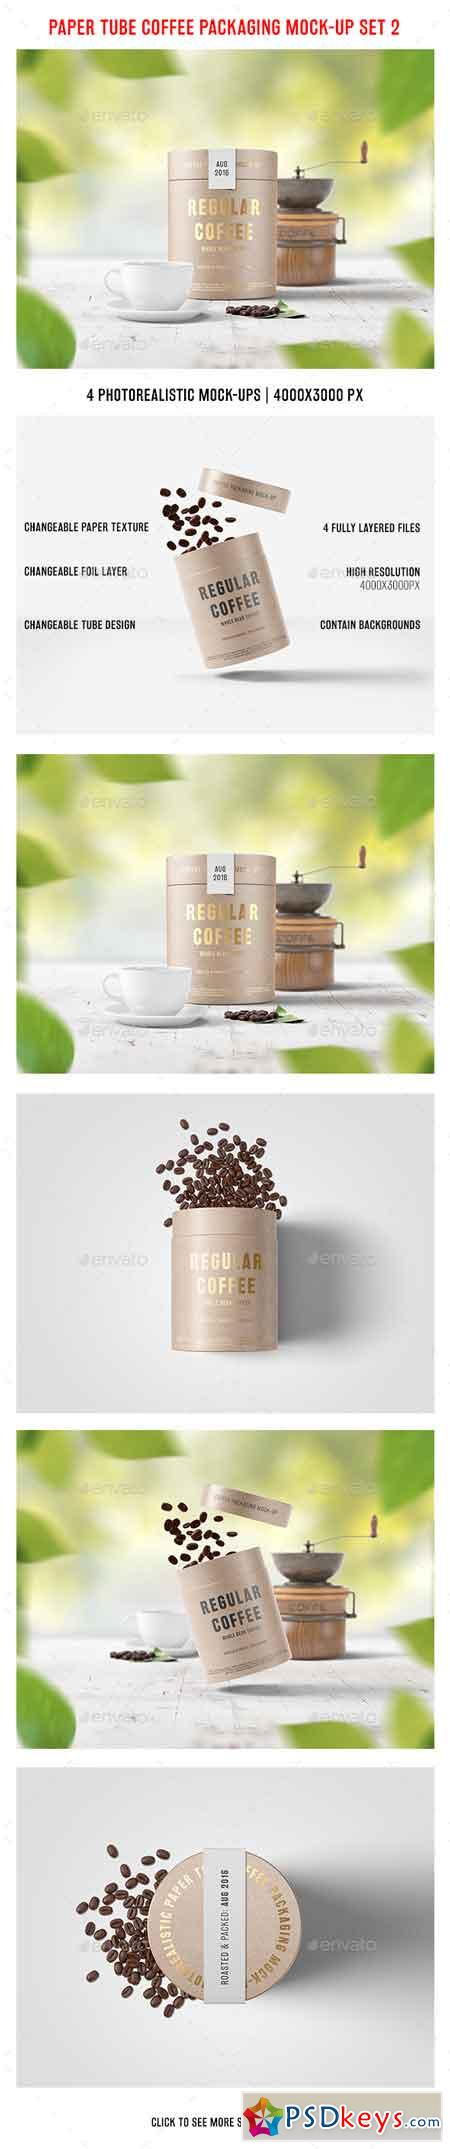 Paper Tube Coffee Packaging Mock-Up Set 2 17693579